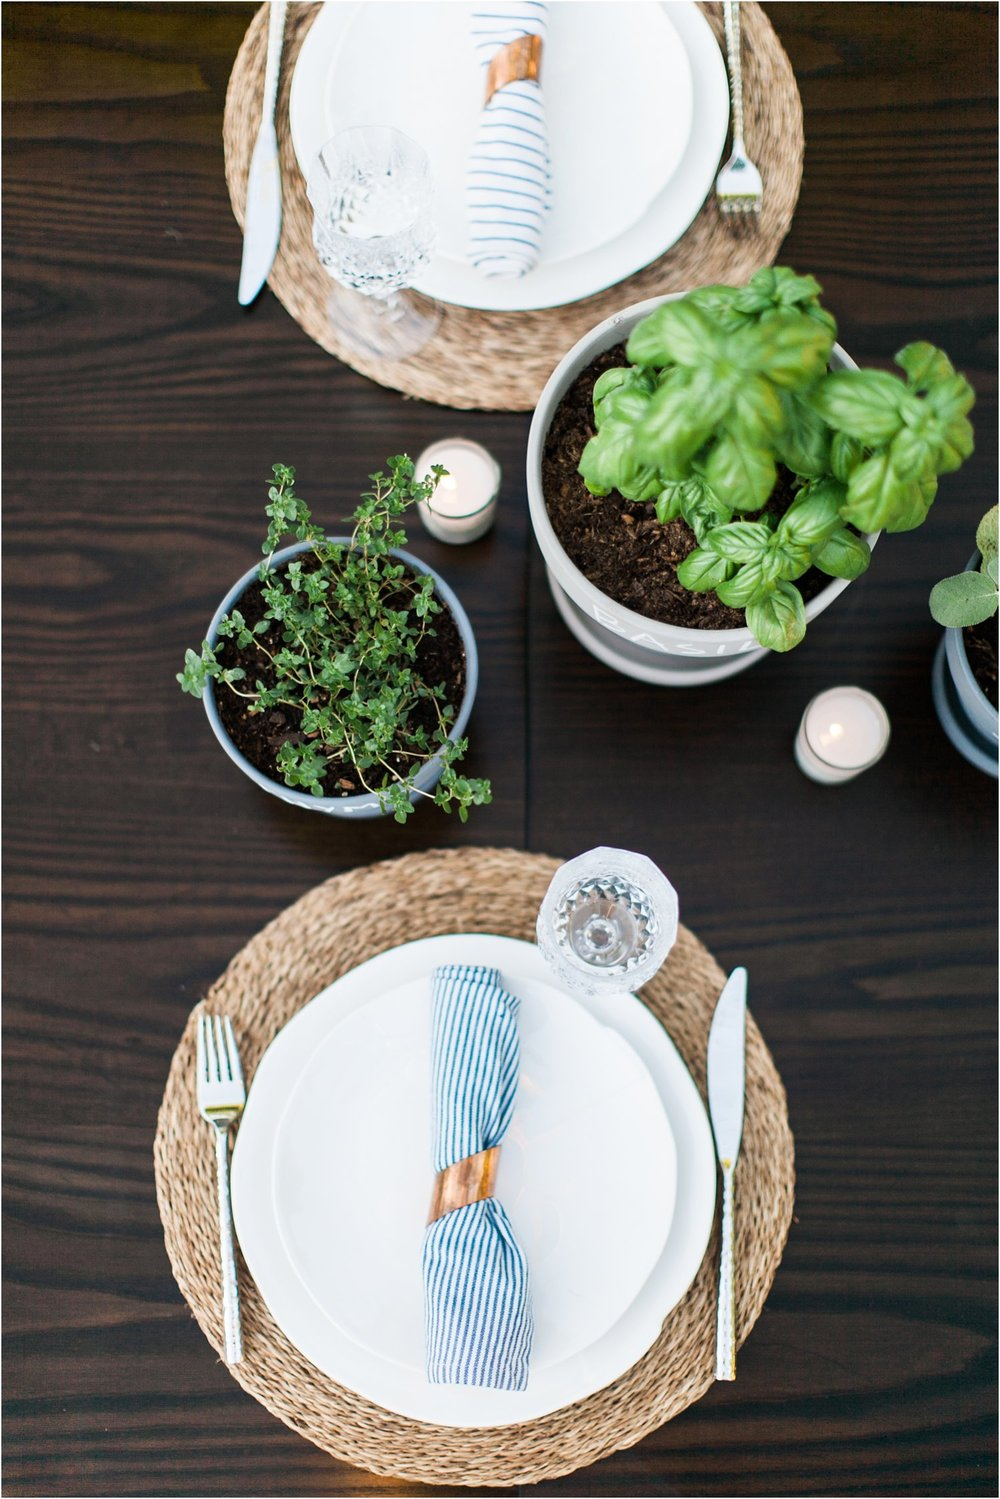 Tips For Creating a Simple Mother's Day Table | Feast & Dwell